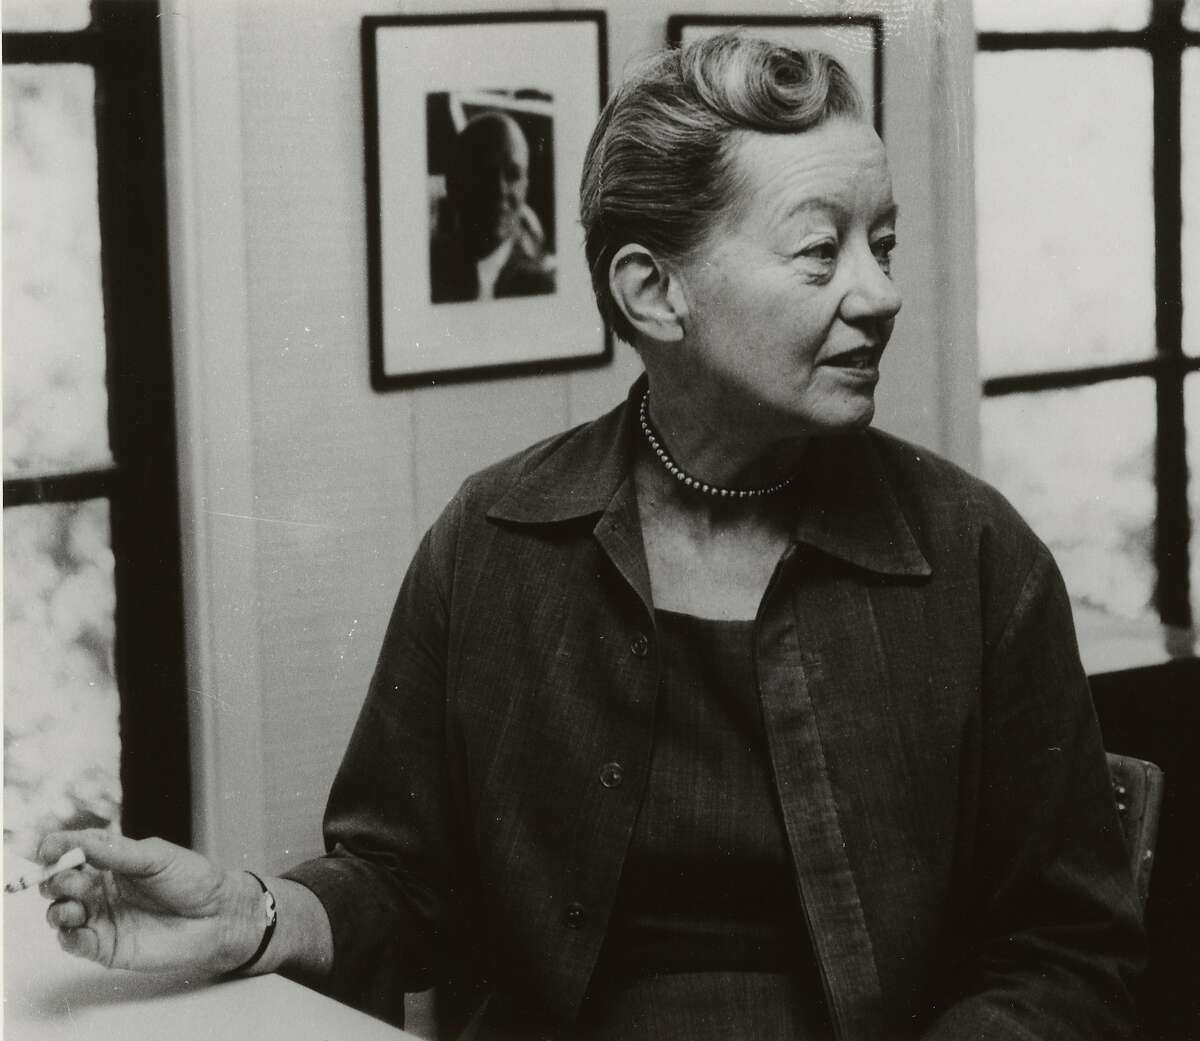 A photograph from the early 1960s of Catherine Bauer Wurster, a nationally influential advocate for diverse low-income housing who taught at UC Berkeley for more than a decade before her death in 1964. In her honor, the academic building that houses the College of Environmental Design was renamed Bauer Wurster Hall in December 2020.